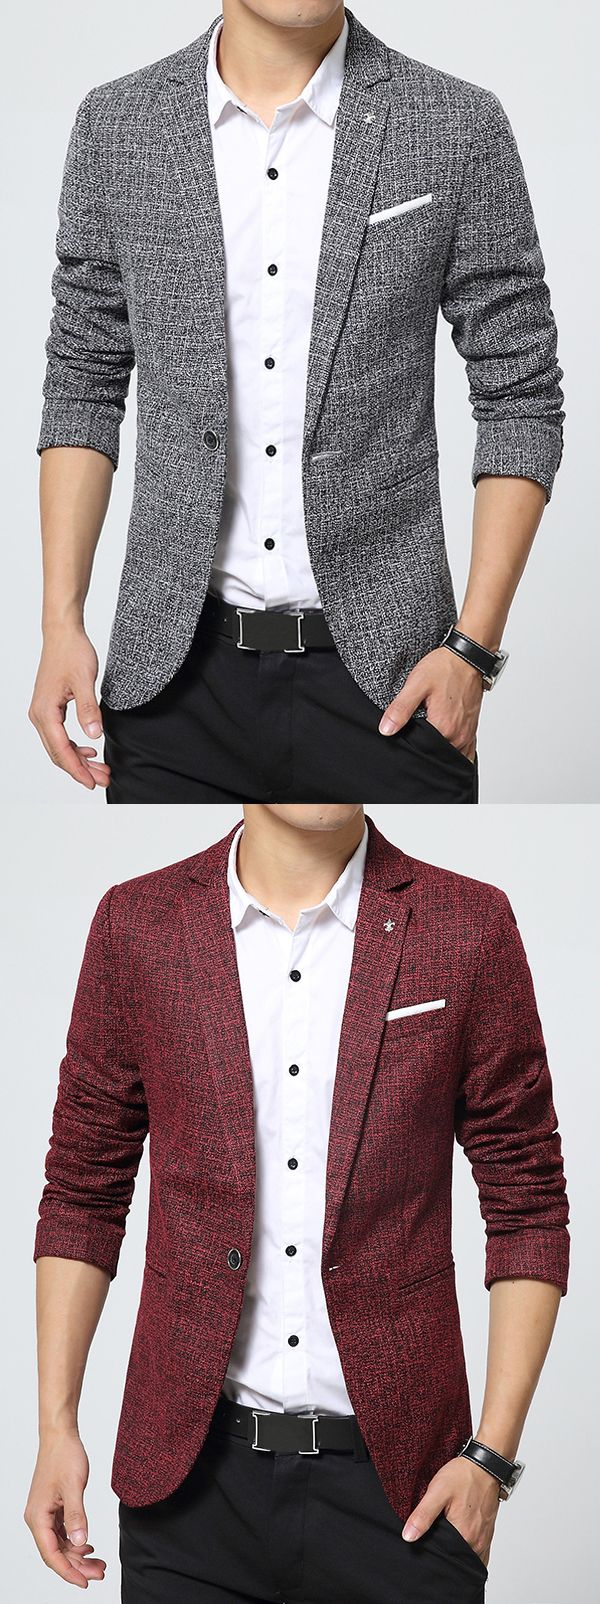 $44.19>Ericdress Notched Lapel Classic Slim Men's Blazer>Material:Cotton Blends>Length:Standard>Sleeve Length:Long Sleeves > Neckline: Notched Lapel >Sleeve Type:Regular>Closure:One Button>Style:Casual